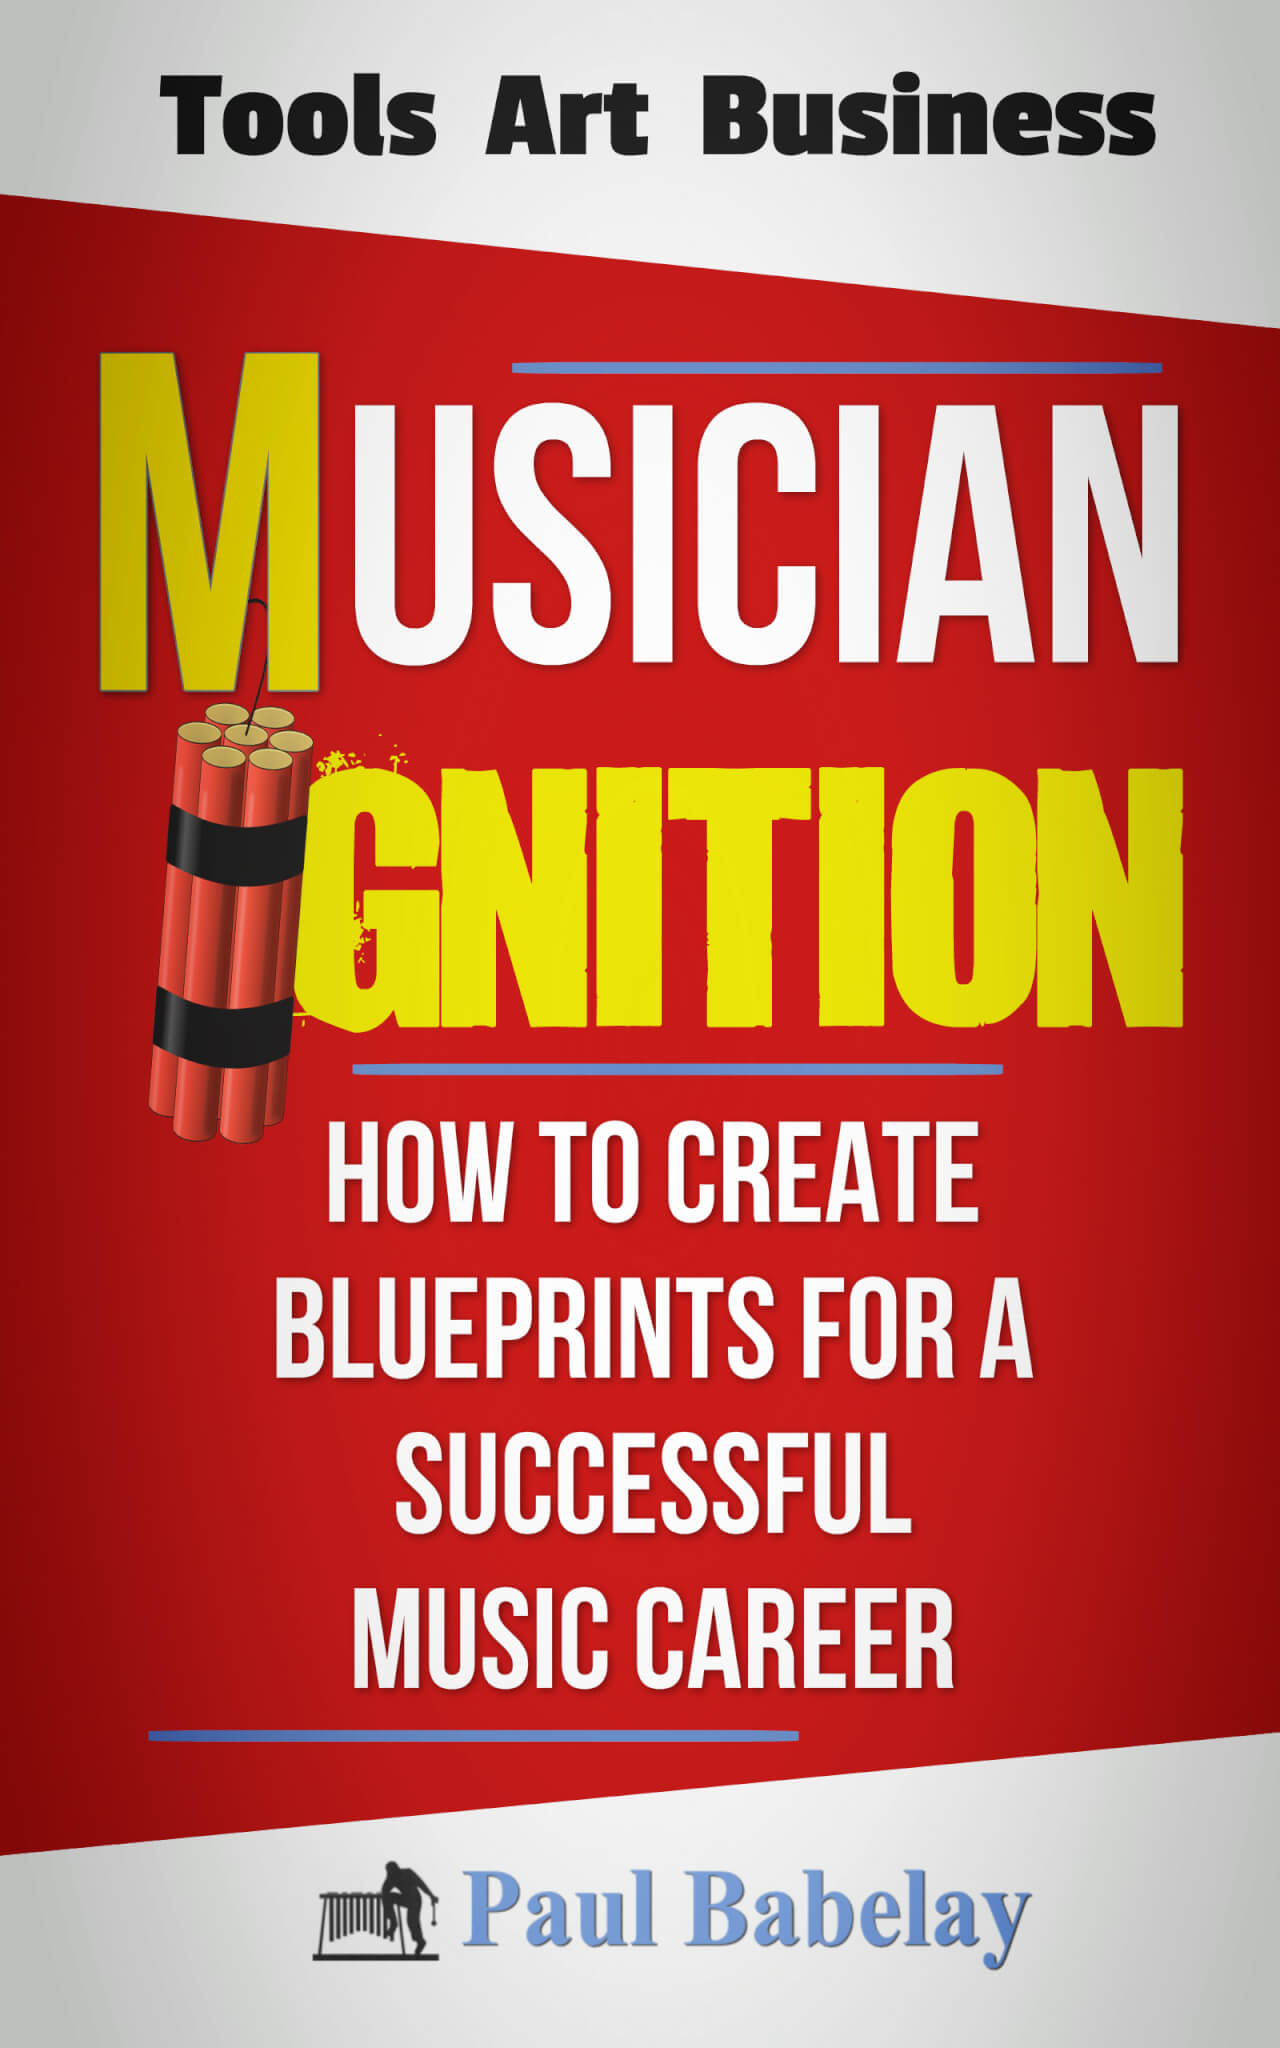 Cover page of Musician Ignition - How To Create Blueprints For A Successful Music Career, © Paul Babelay 2018. Vibe Guy Music, LLC